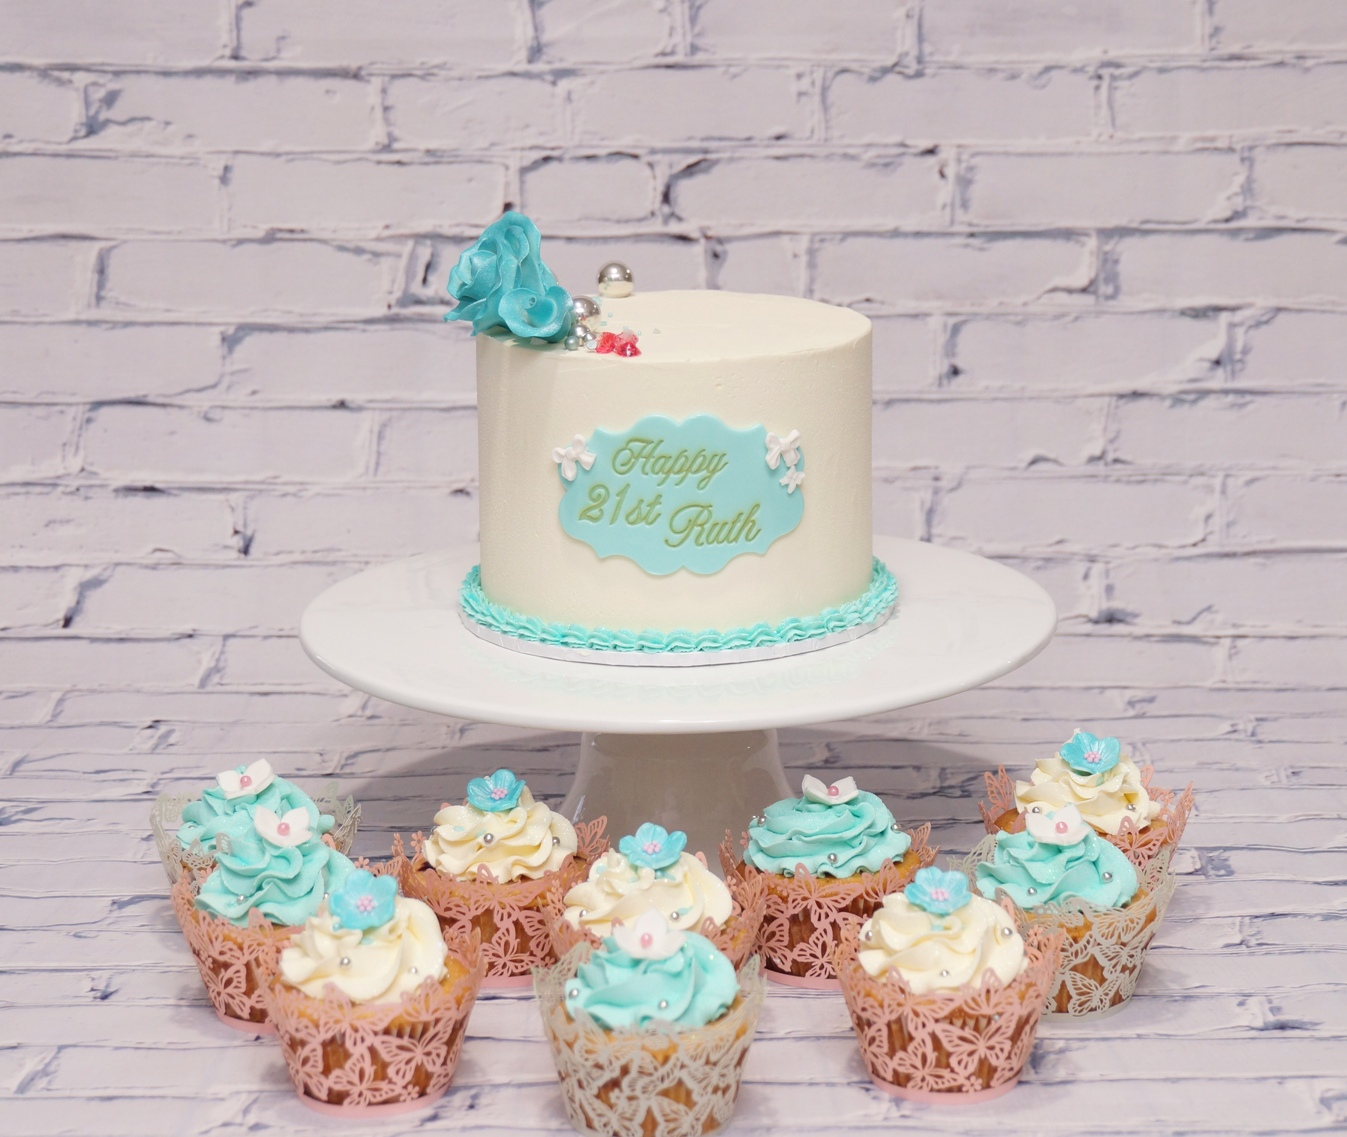 White & Aqua top tier with cupcakes 2